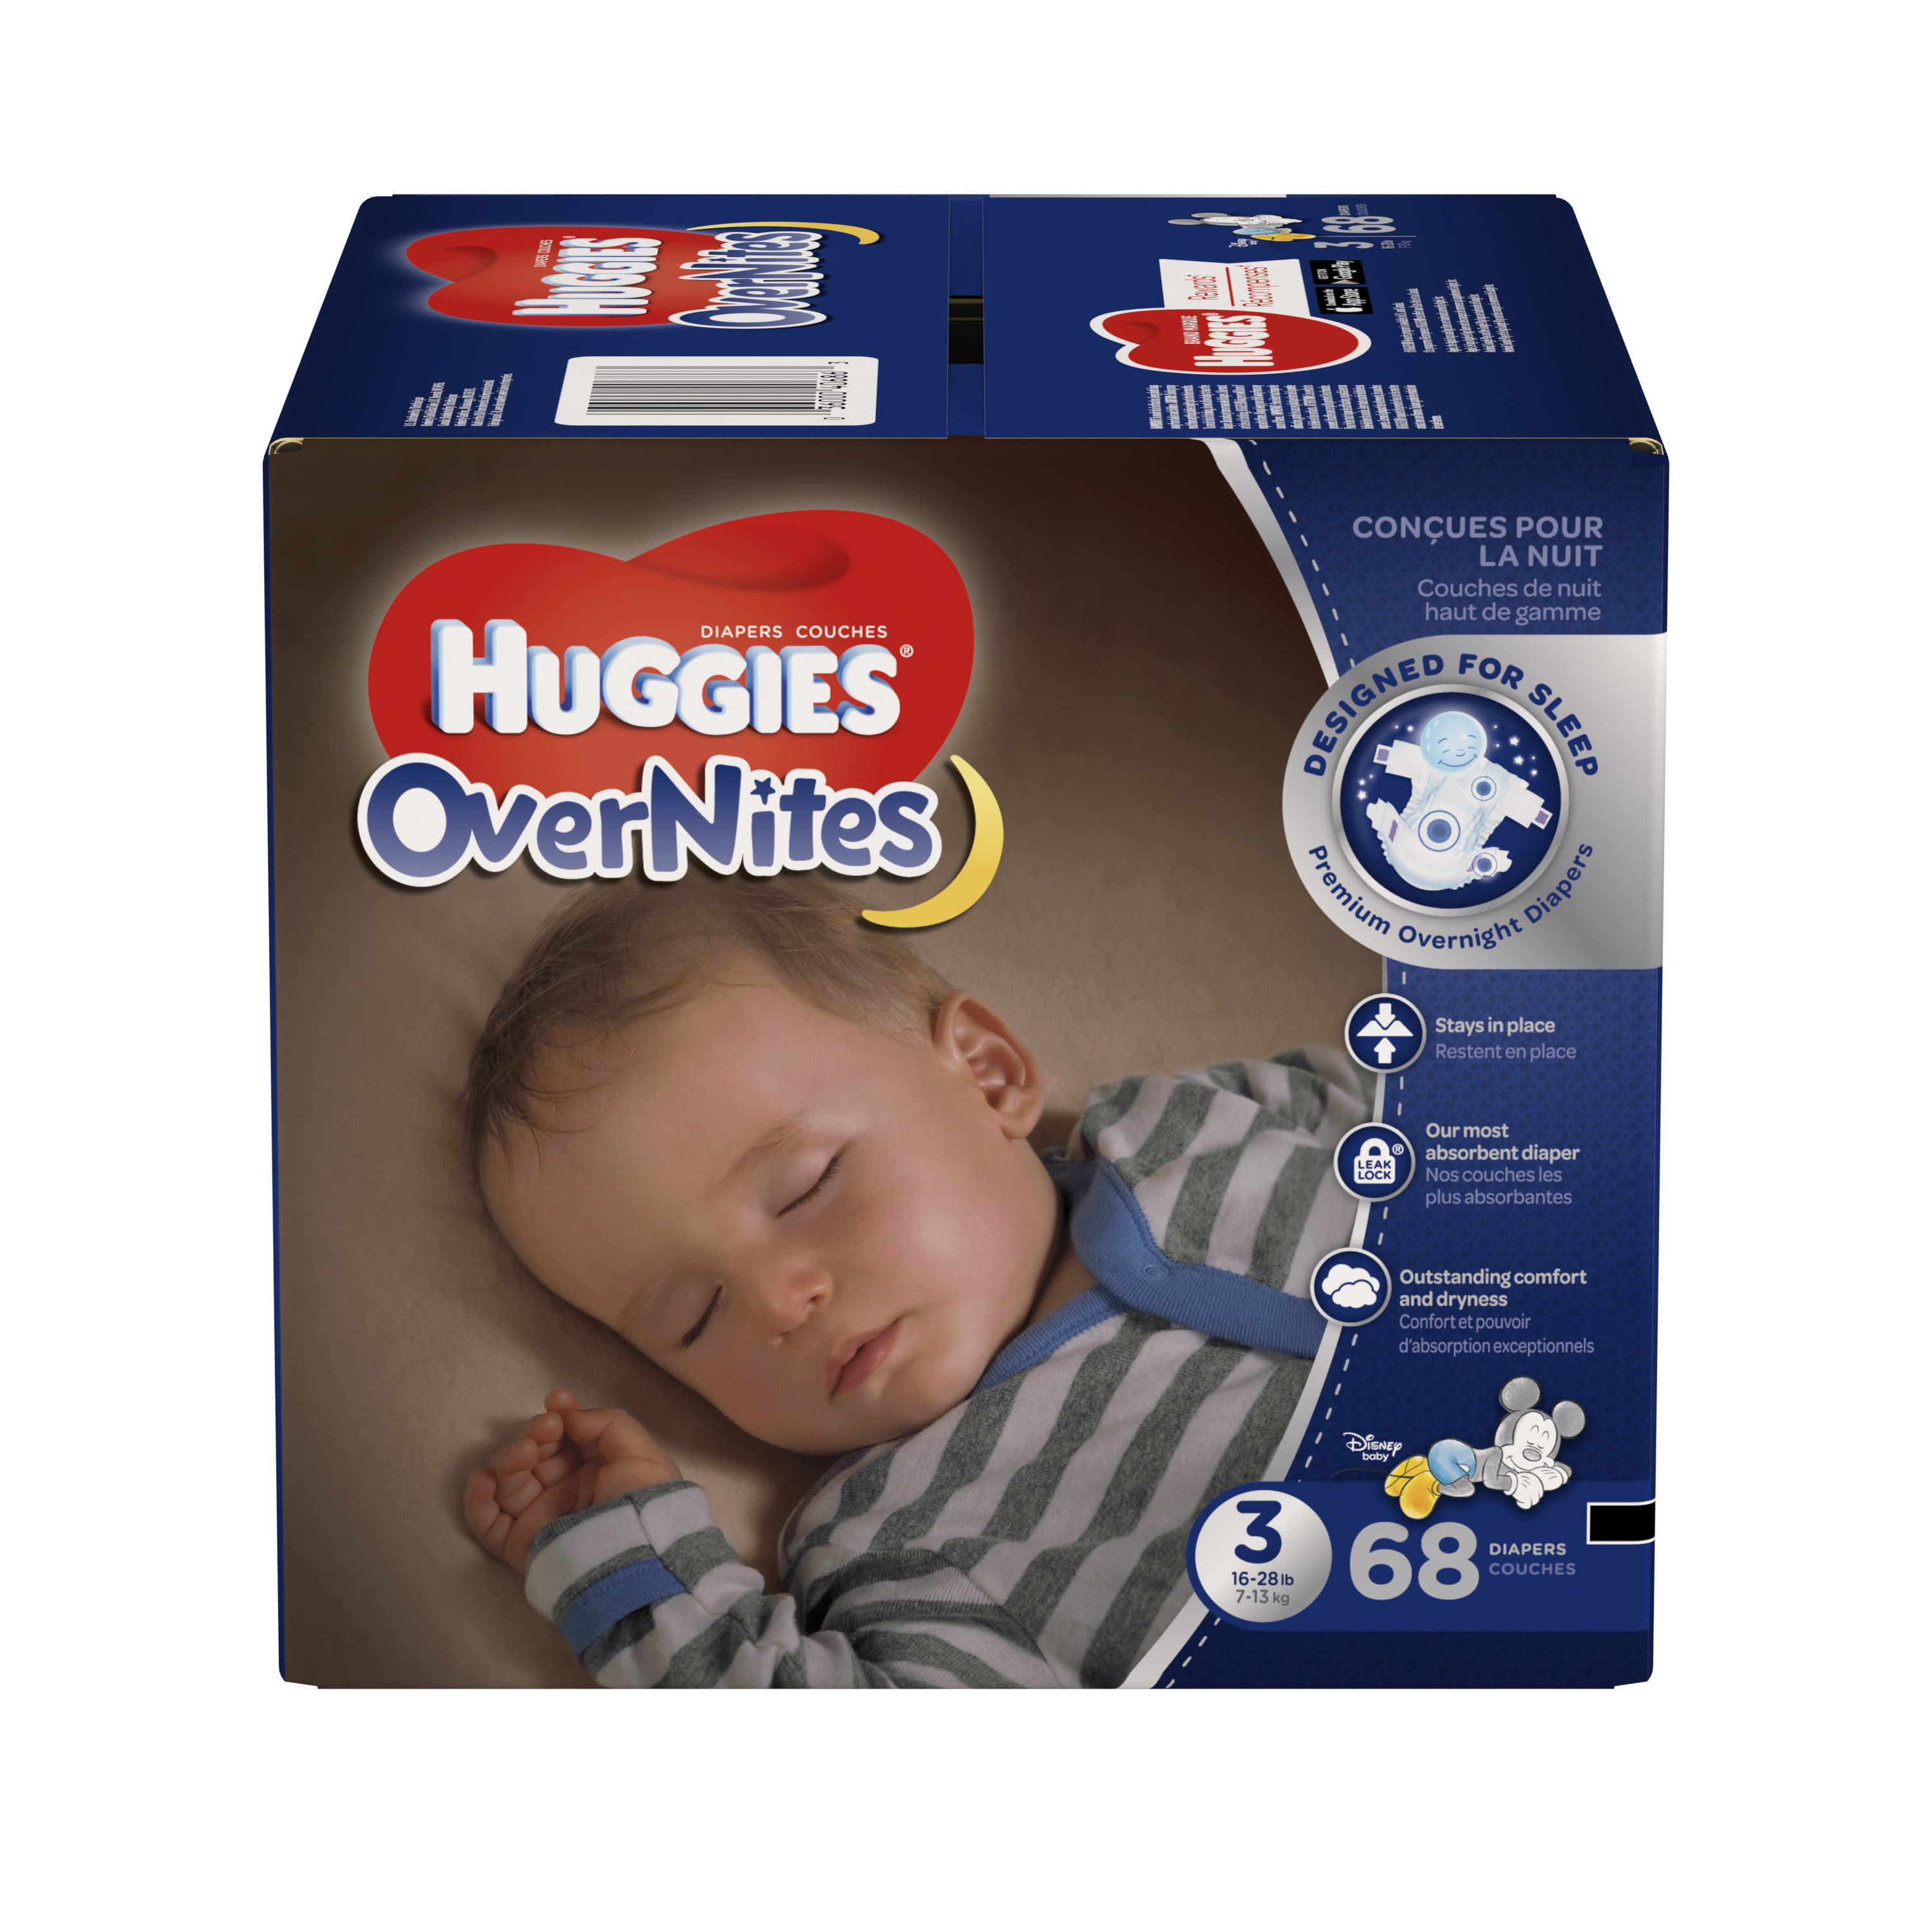 HUGGIES OverNites Diapers, Size 3, 68 Diapers